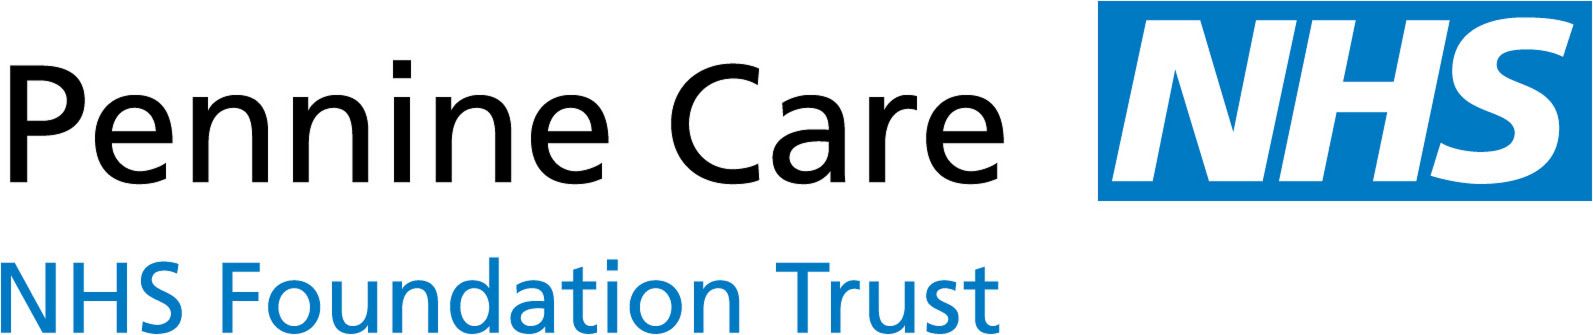 Pennine Care, NHS Foundation Trust